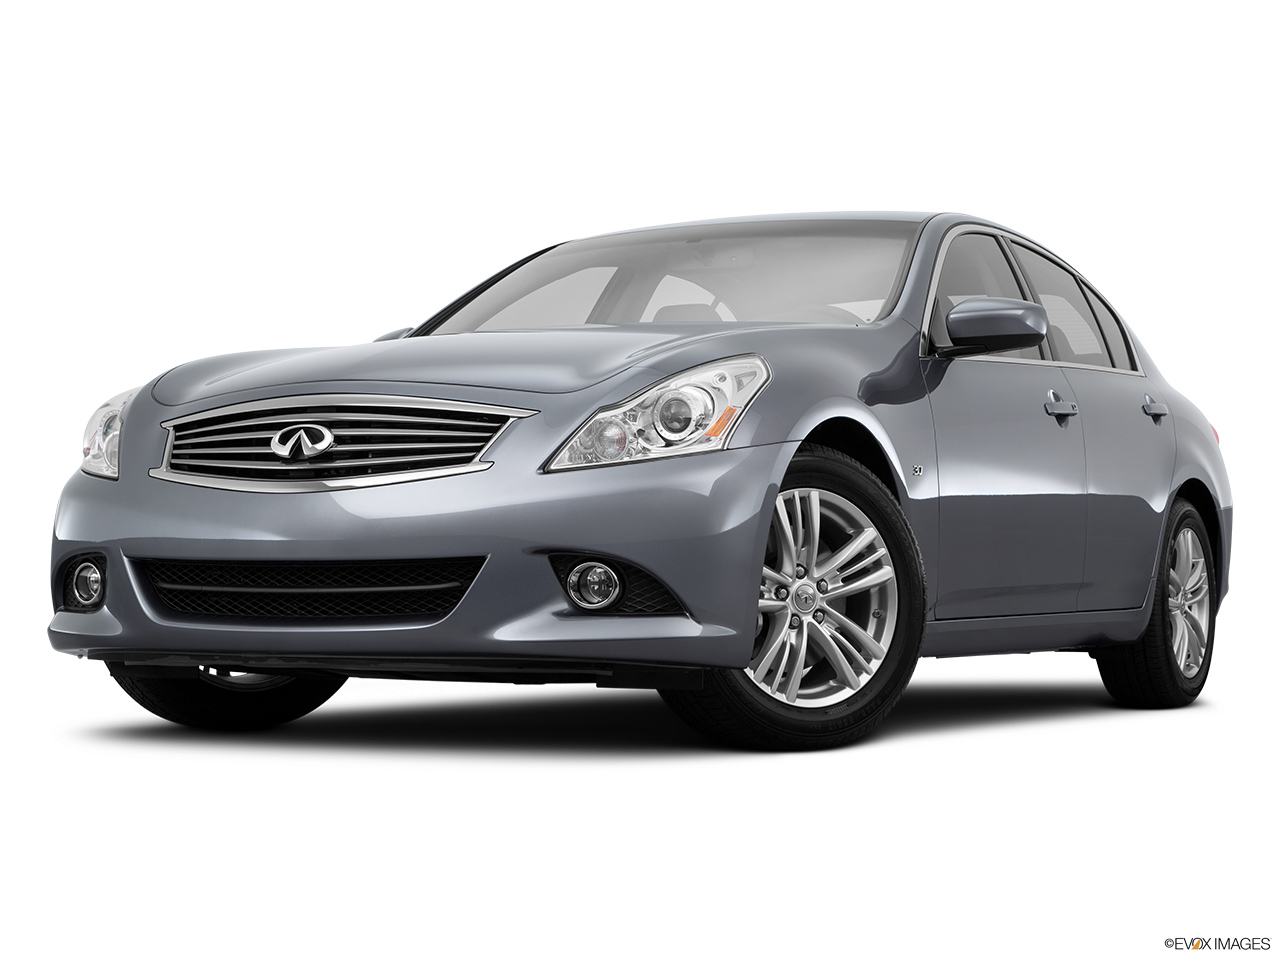 2015 Infiniti Q40 Base Front angle view, low wide perspective.